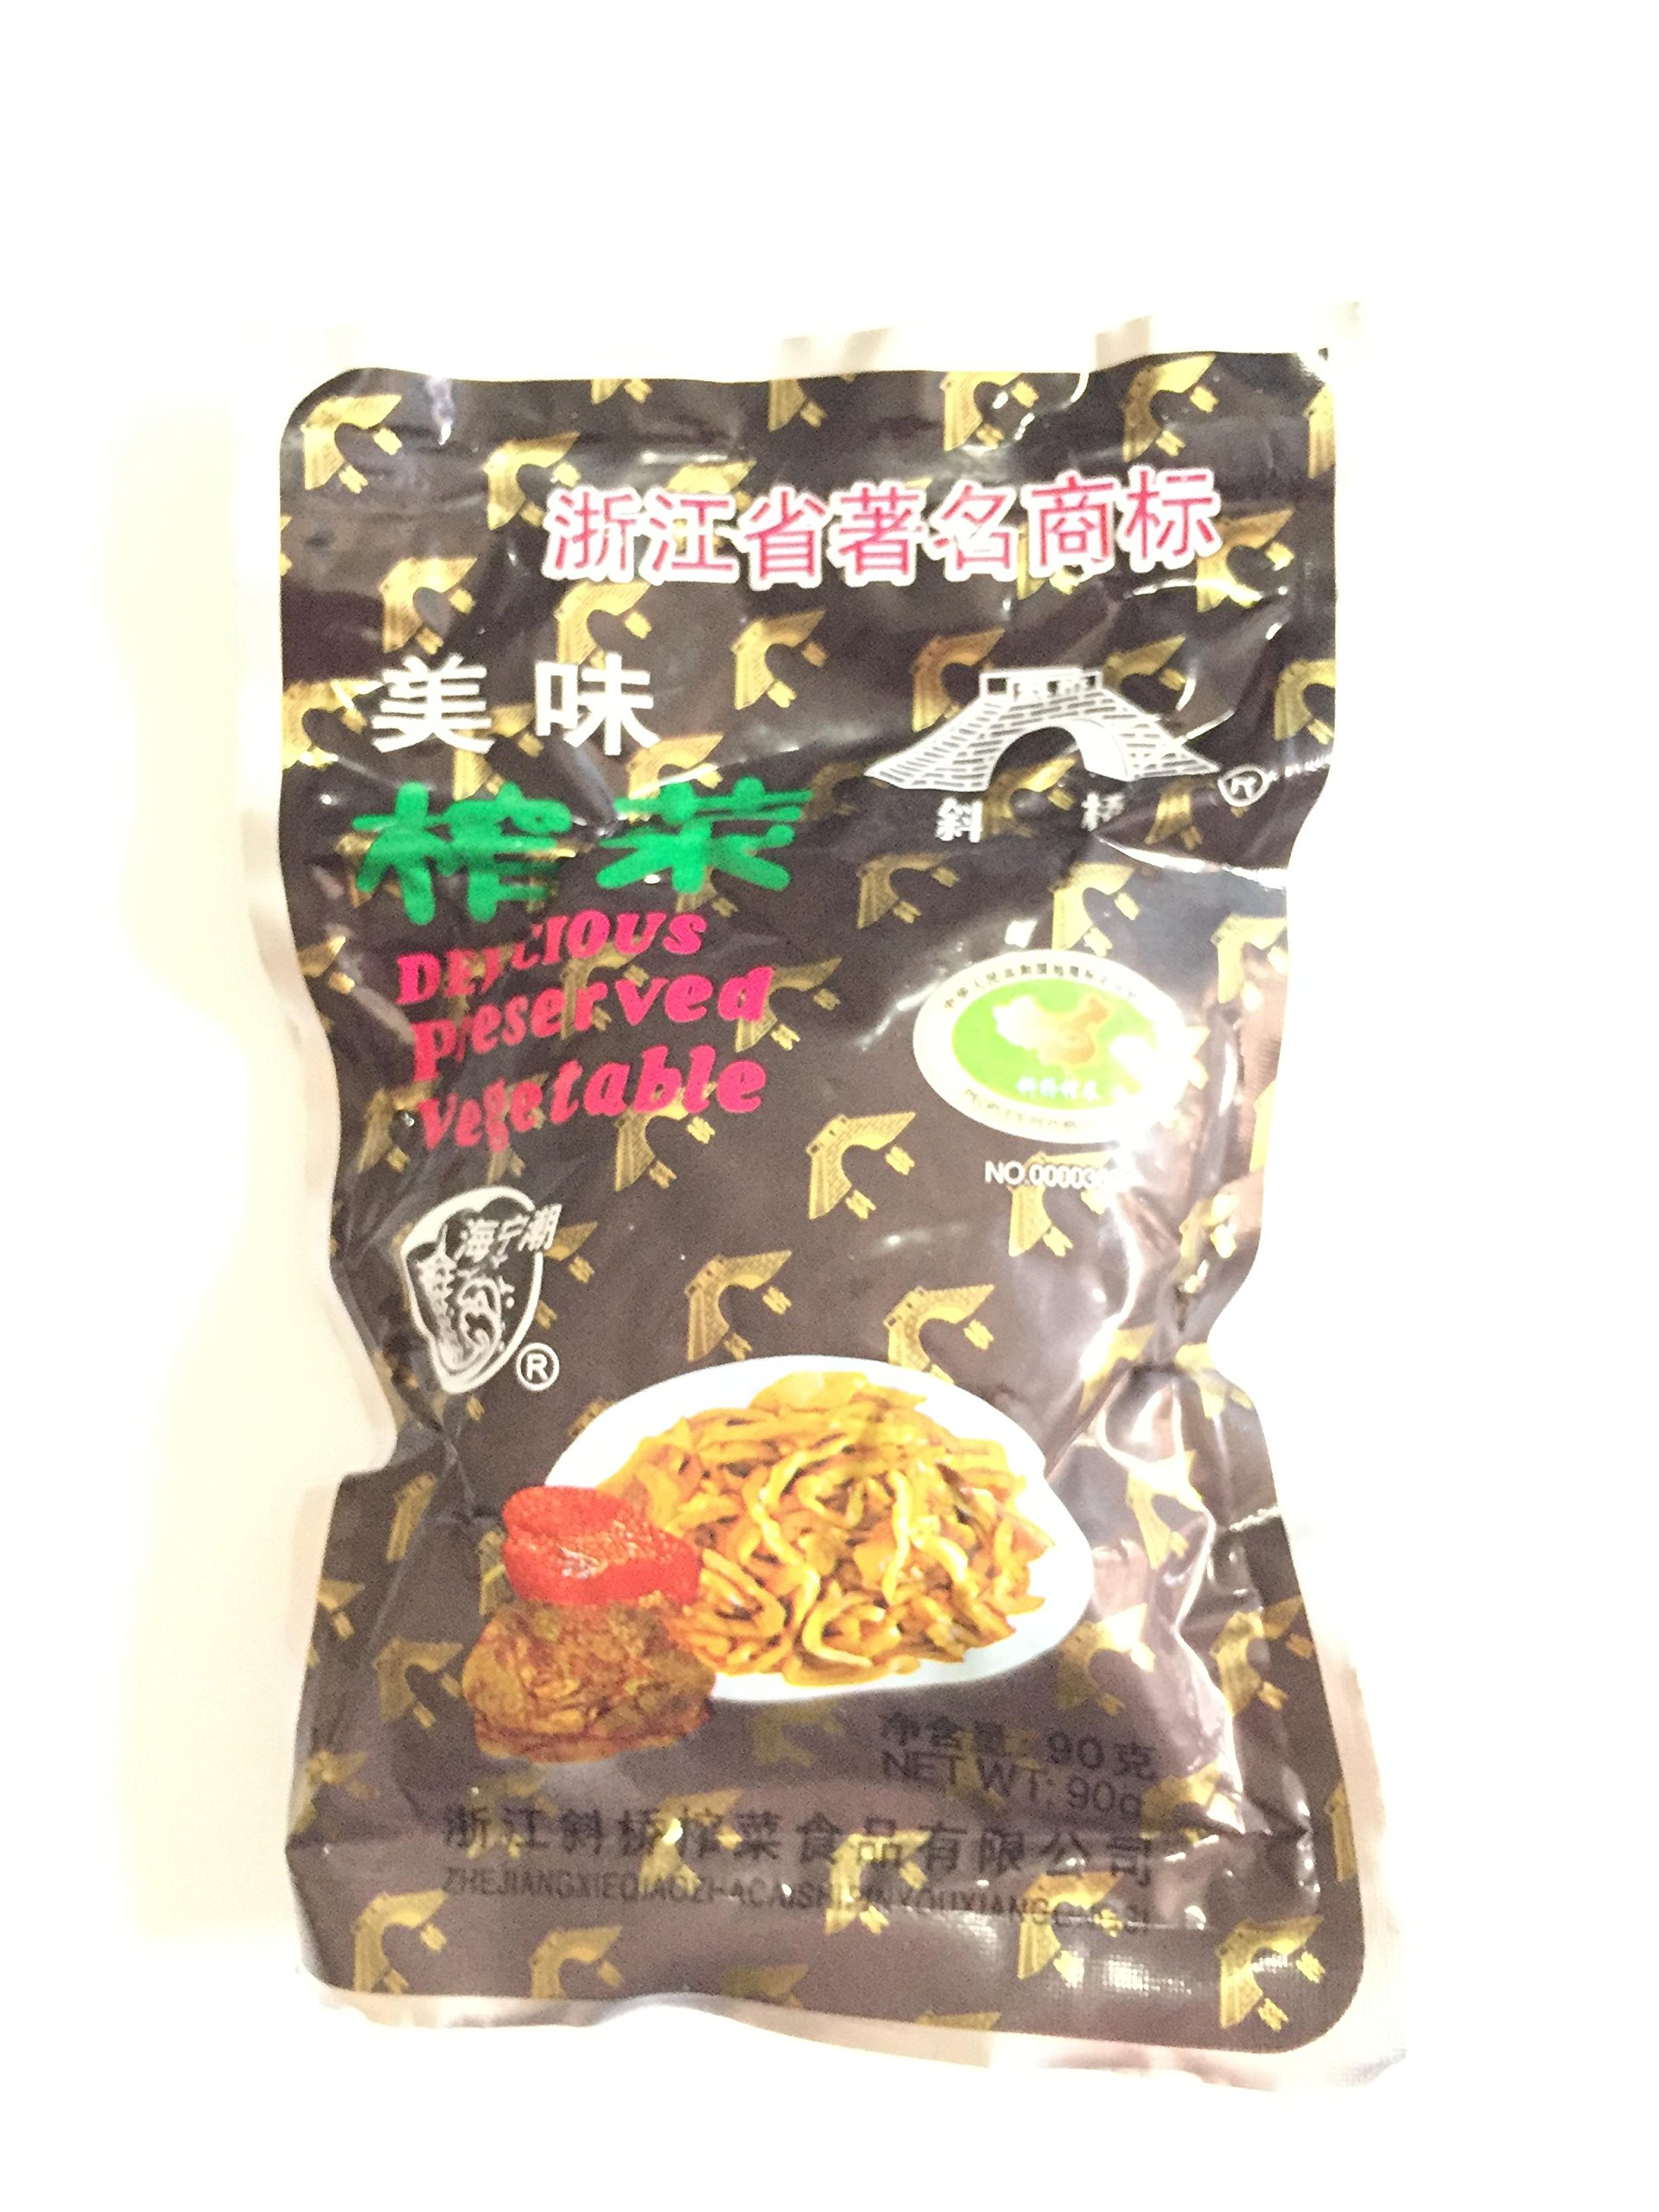 Xieqiao Brand Delicious preserved vegetables 5 PACK (3.17 oz)